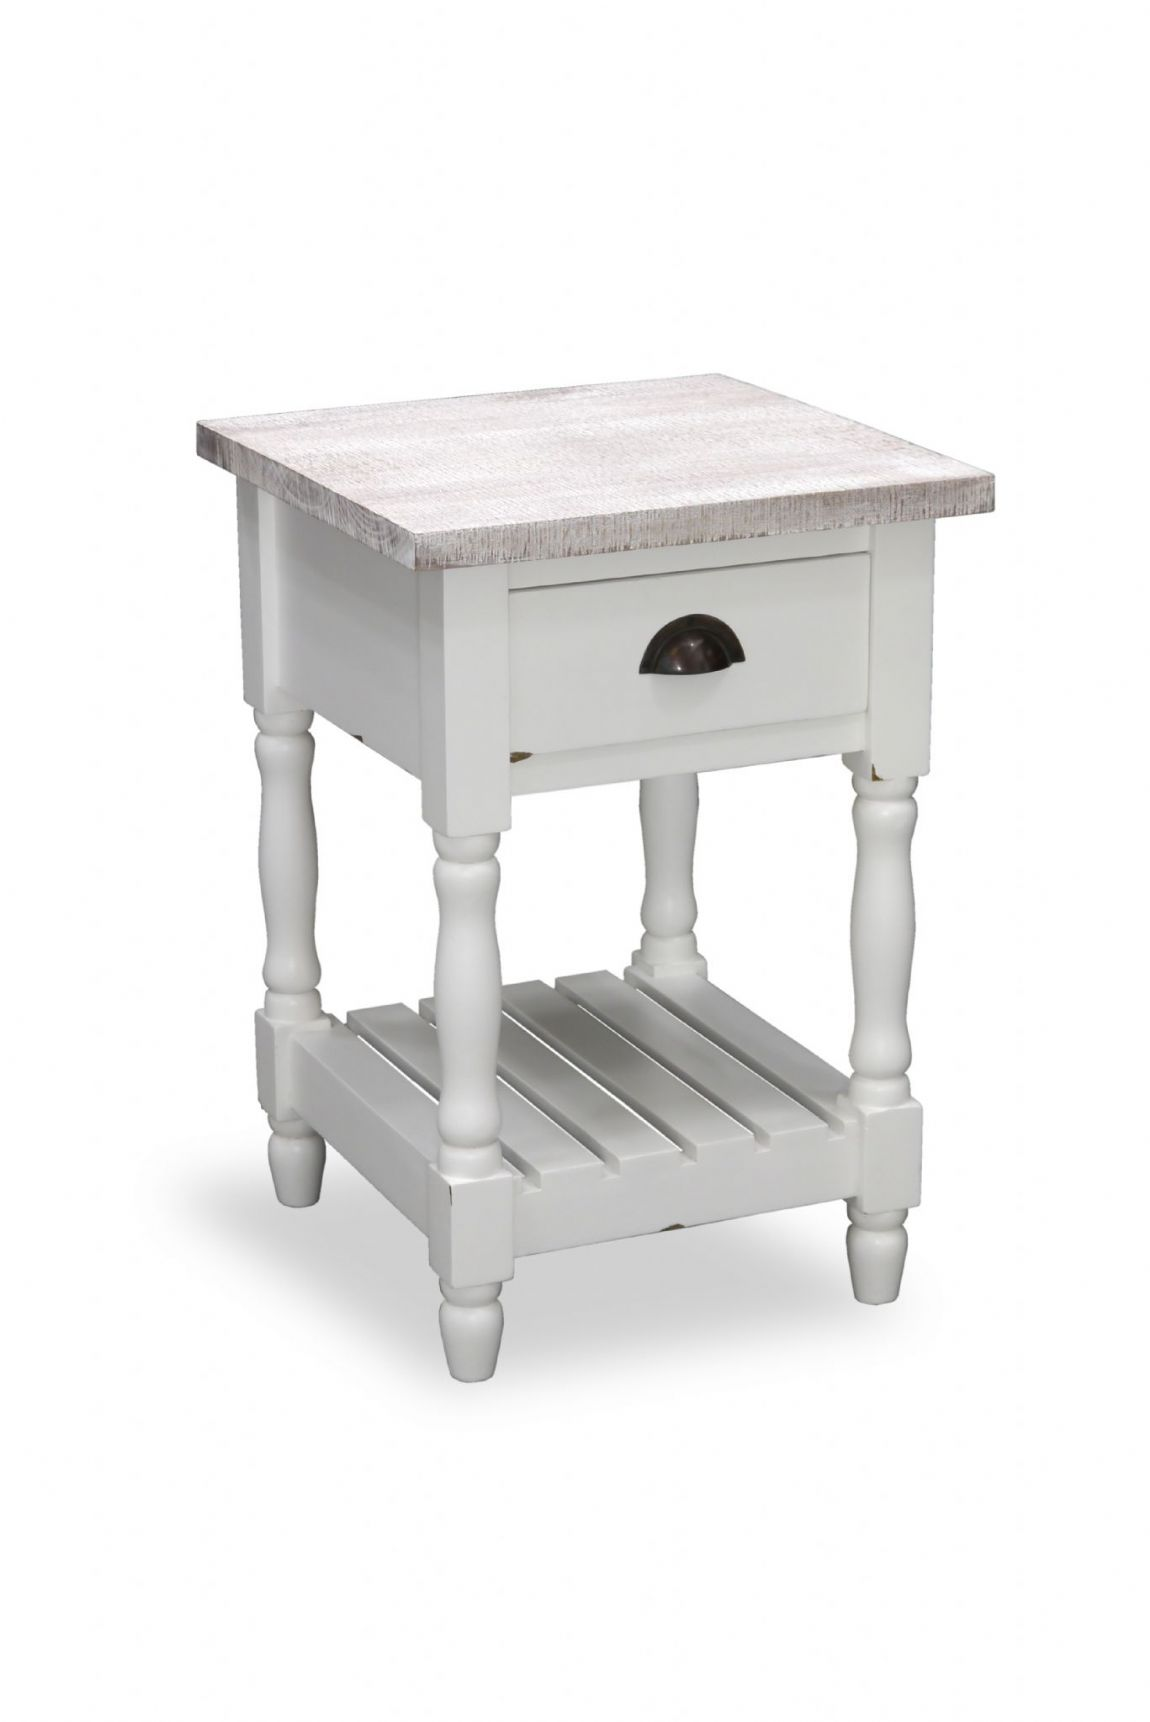 Fowey Turned Leg Side Table - White